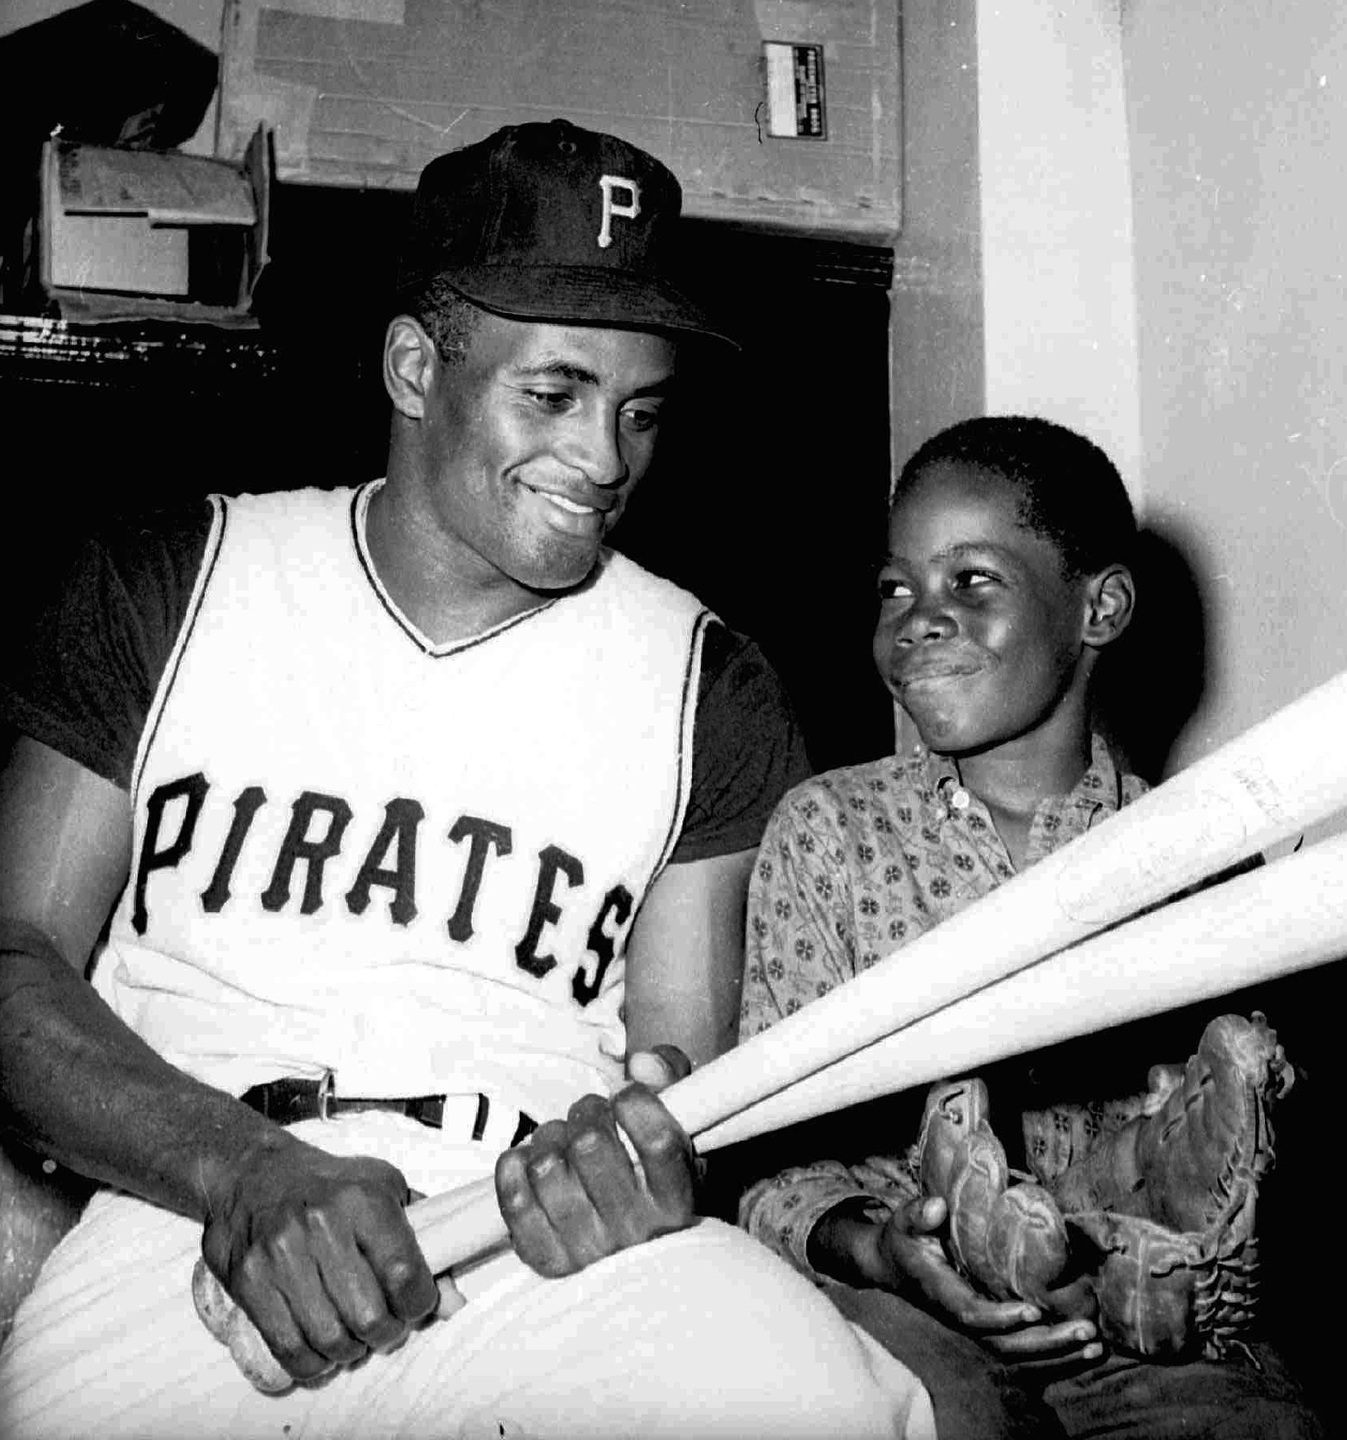 Pittsburgh Pirates' Roberto Clemente shows Junior James, 9, where he likes to hit the ball, in Pittsburgh, Sept. 25, 1961.